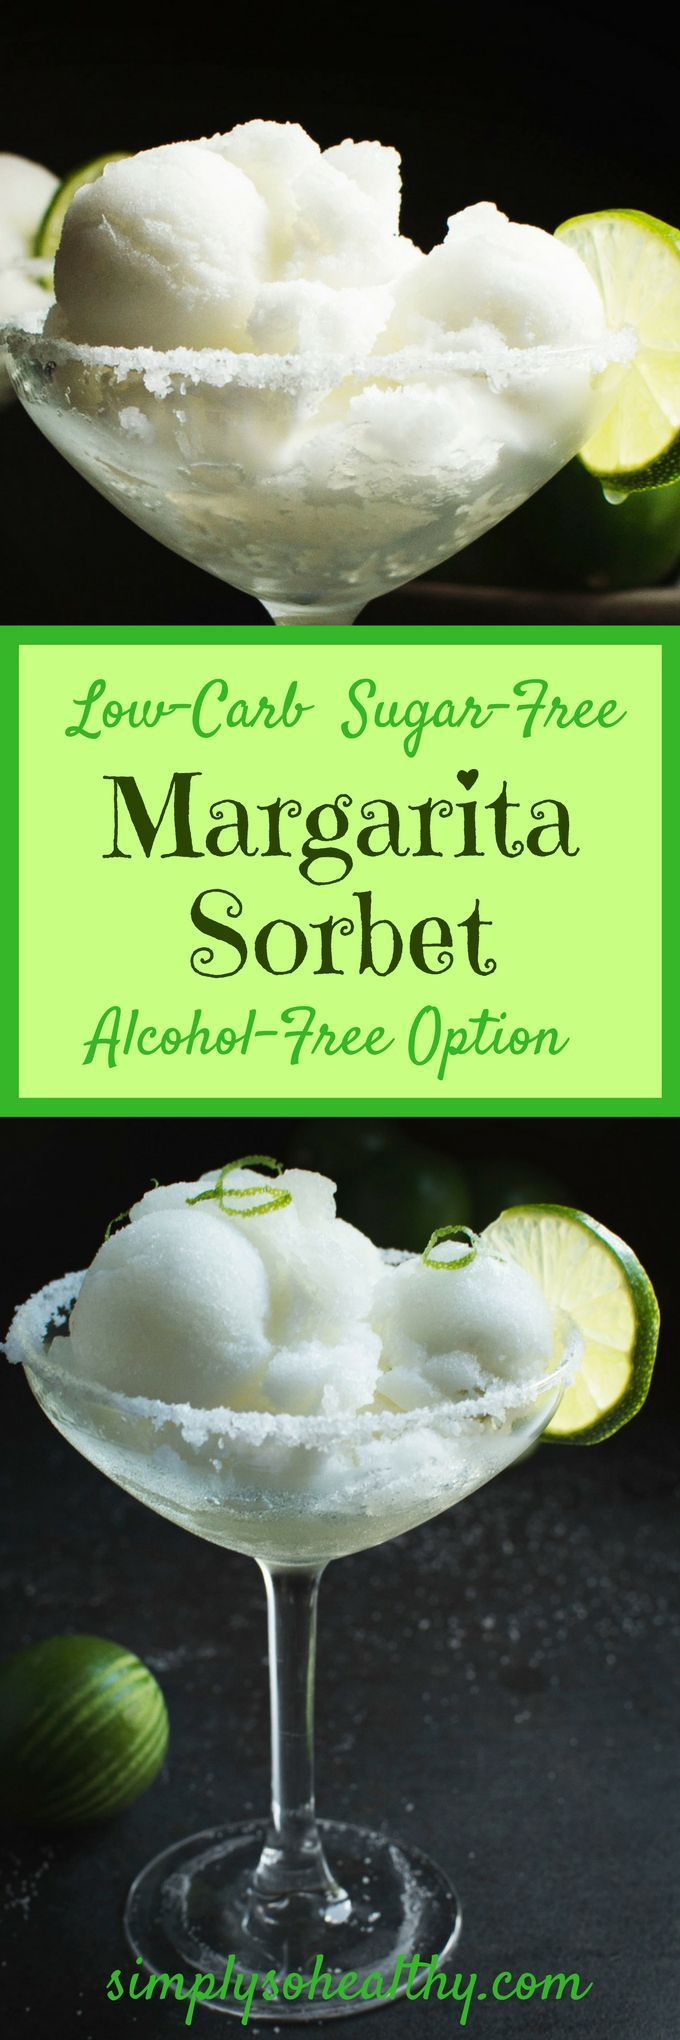 This Low-Carb Margarita Sorbet recipe makes a cooling summer dessert. It can be made with or without alcohol and works for low-carb, gluten-free, dairy-free, Atkins, ketogenic, or Banting diets.